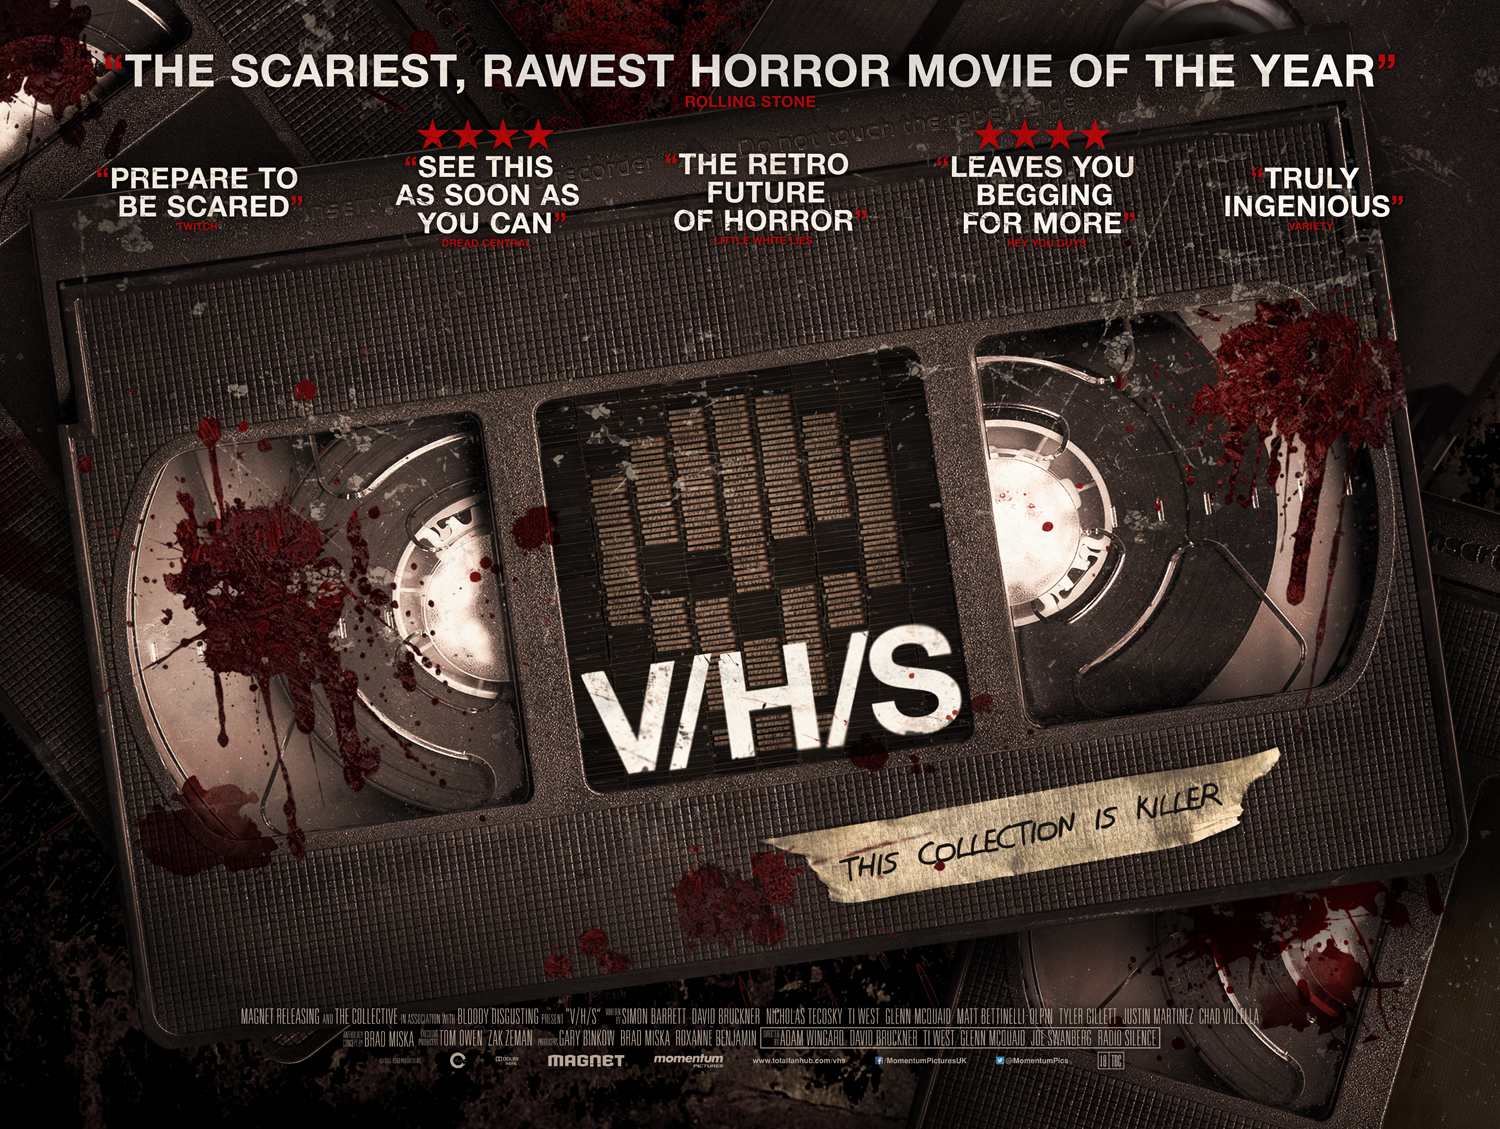 V/H/S Official UK Fanhub